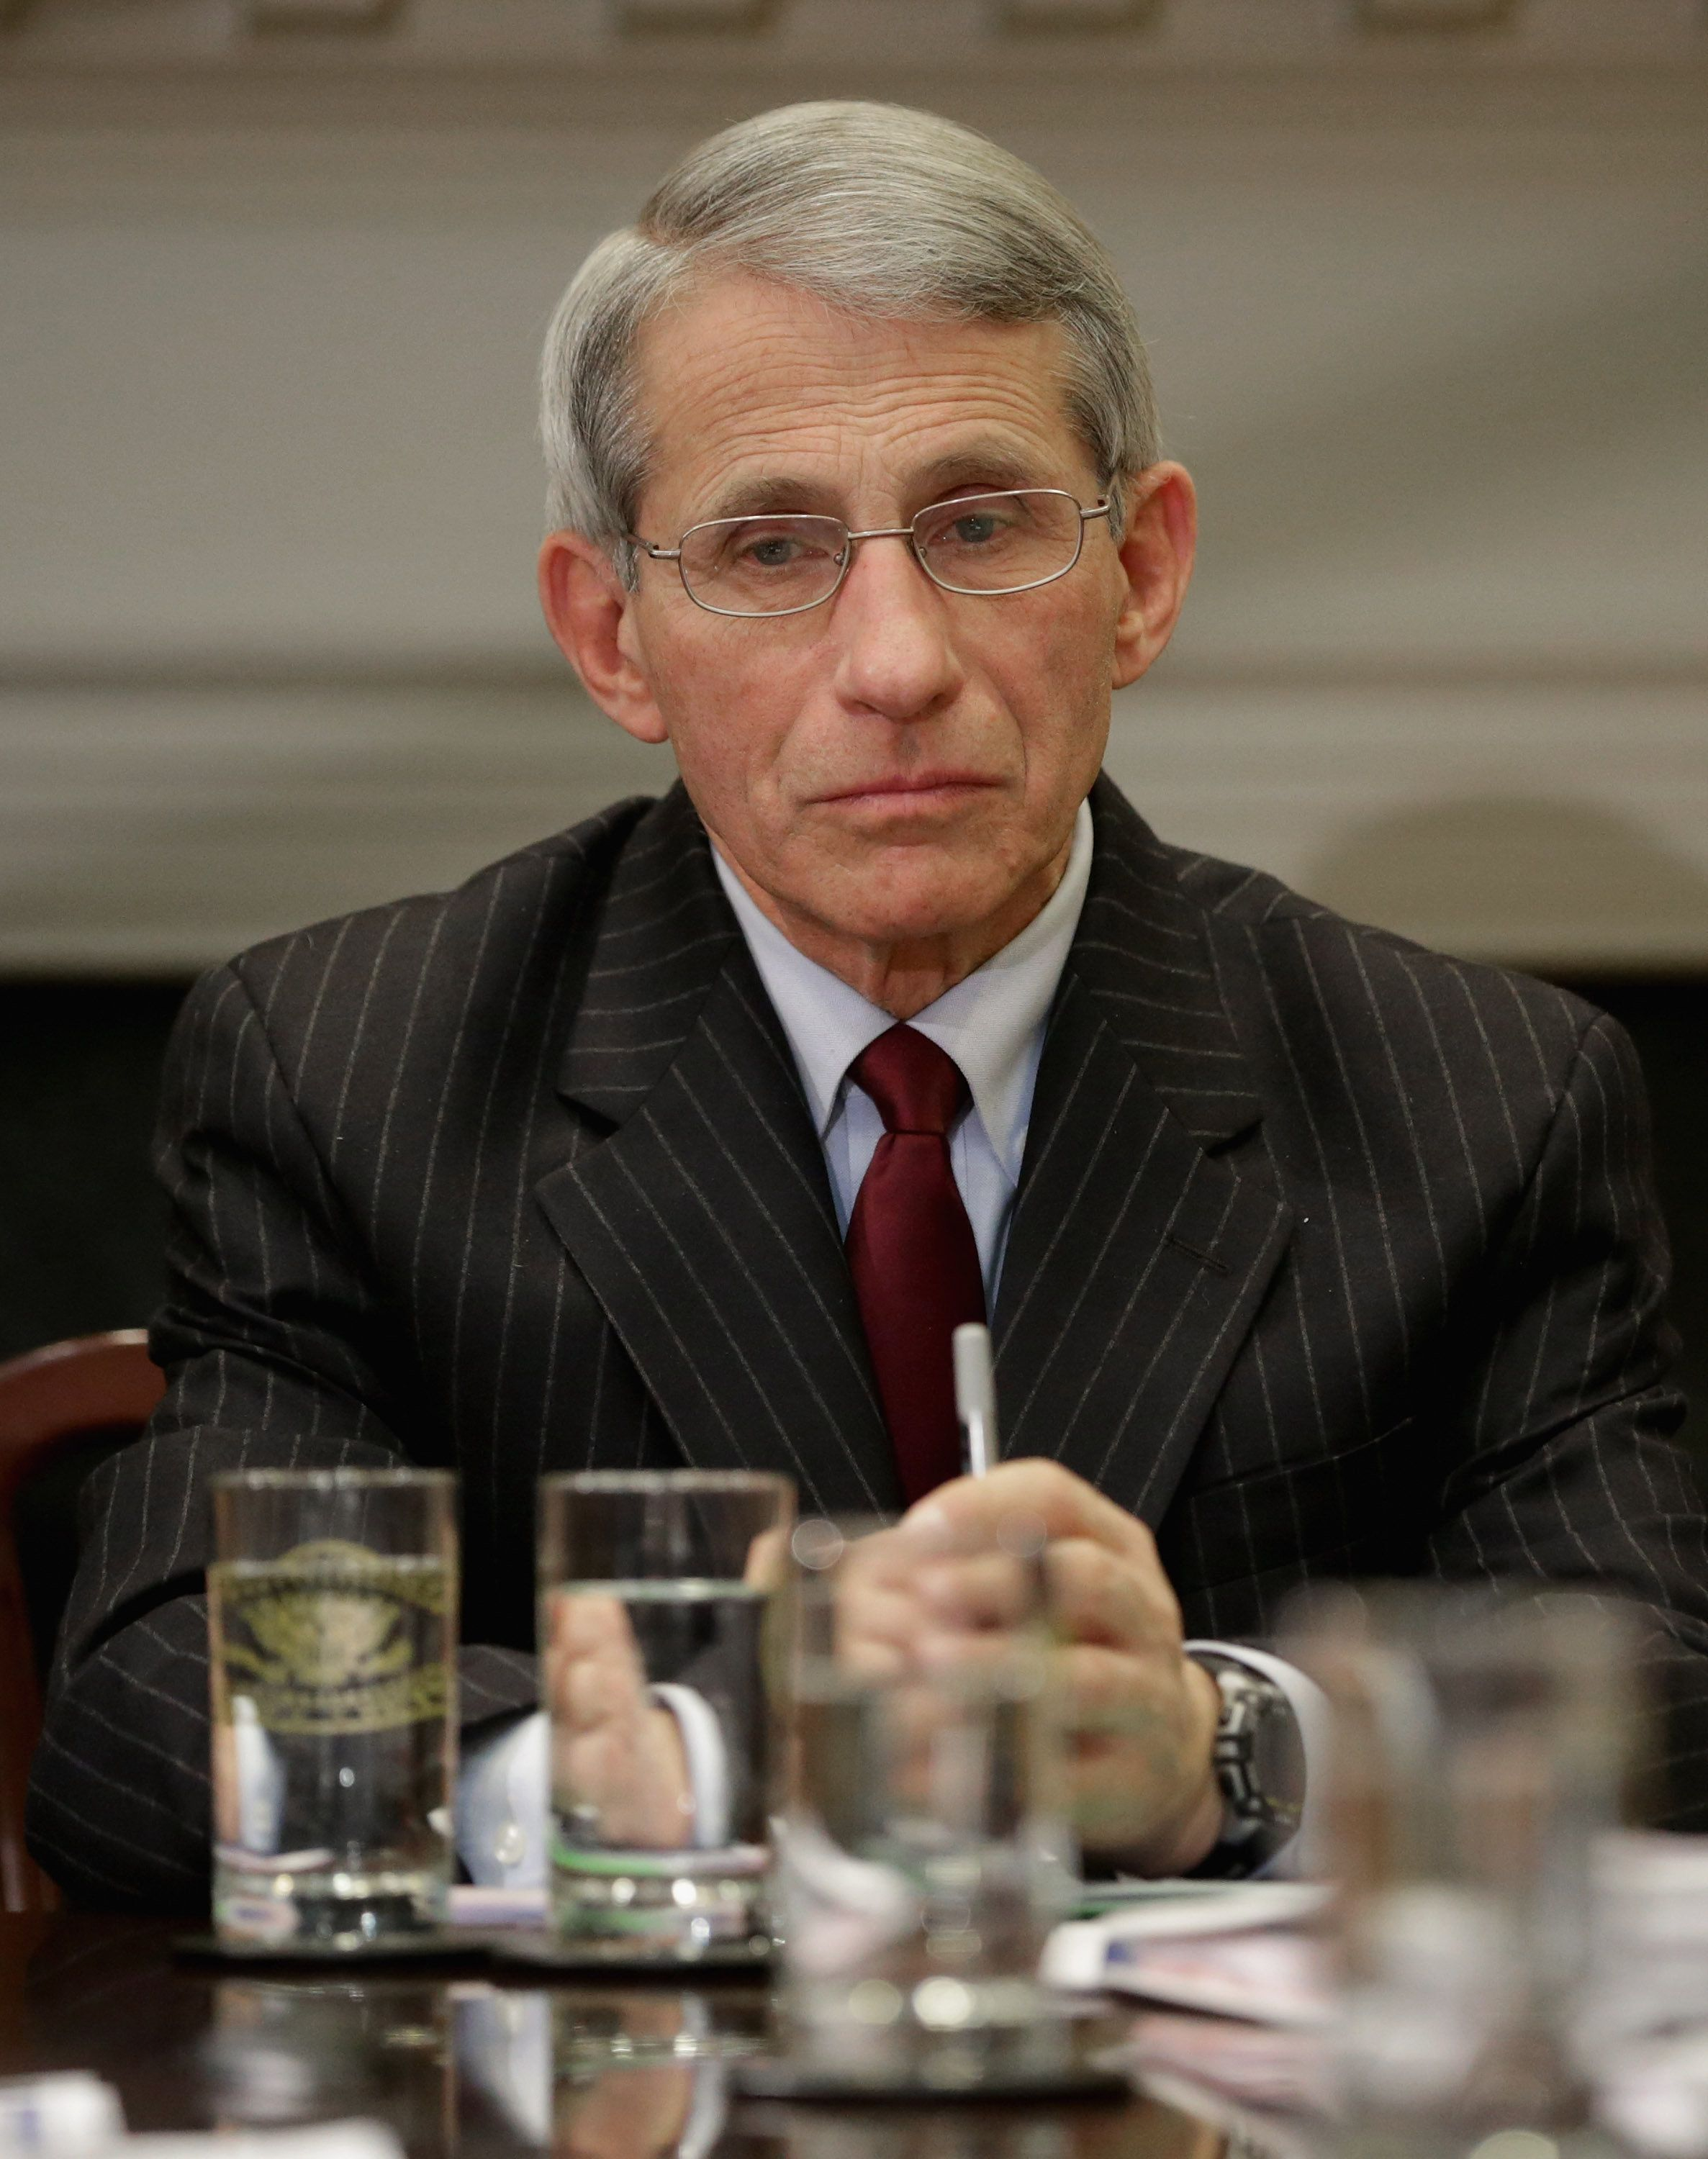 U.S. National Institute of Allergy and Infectious Diseases Director Anthony Fauci says agency researchers...